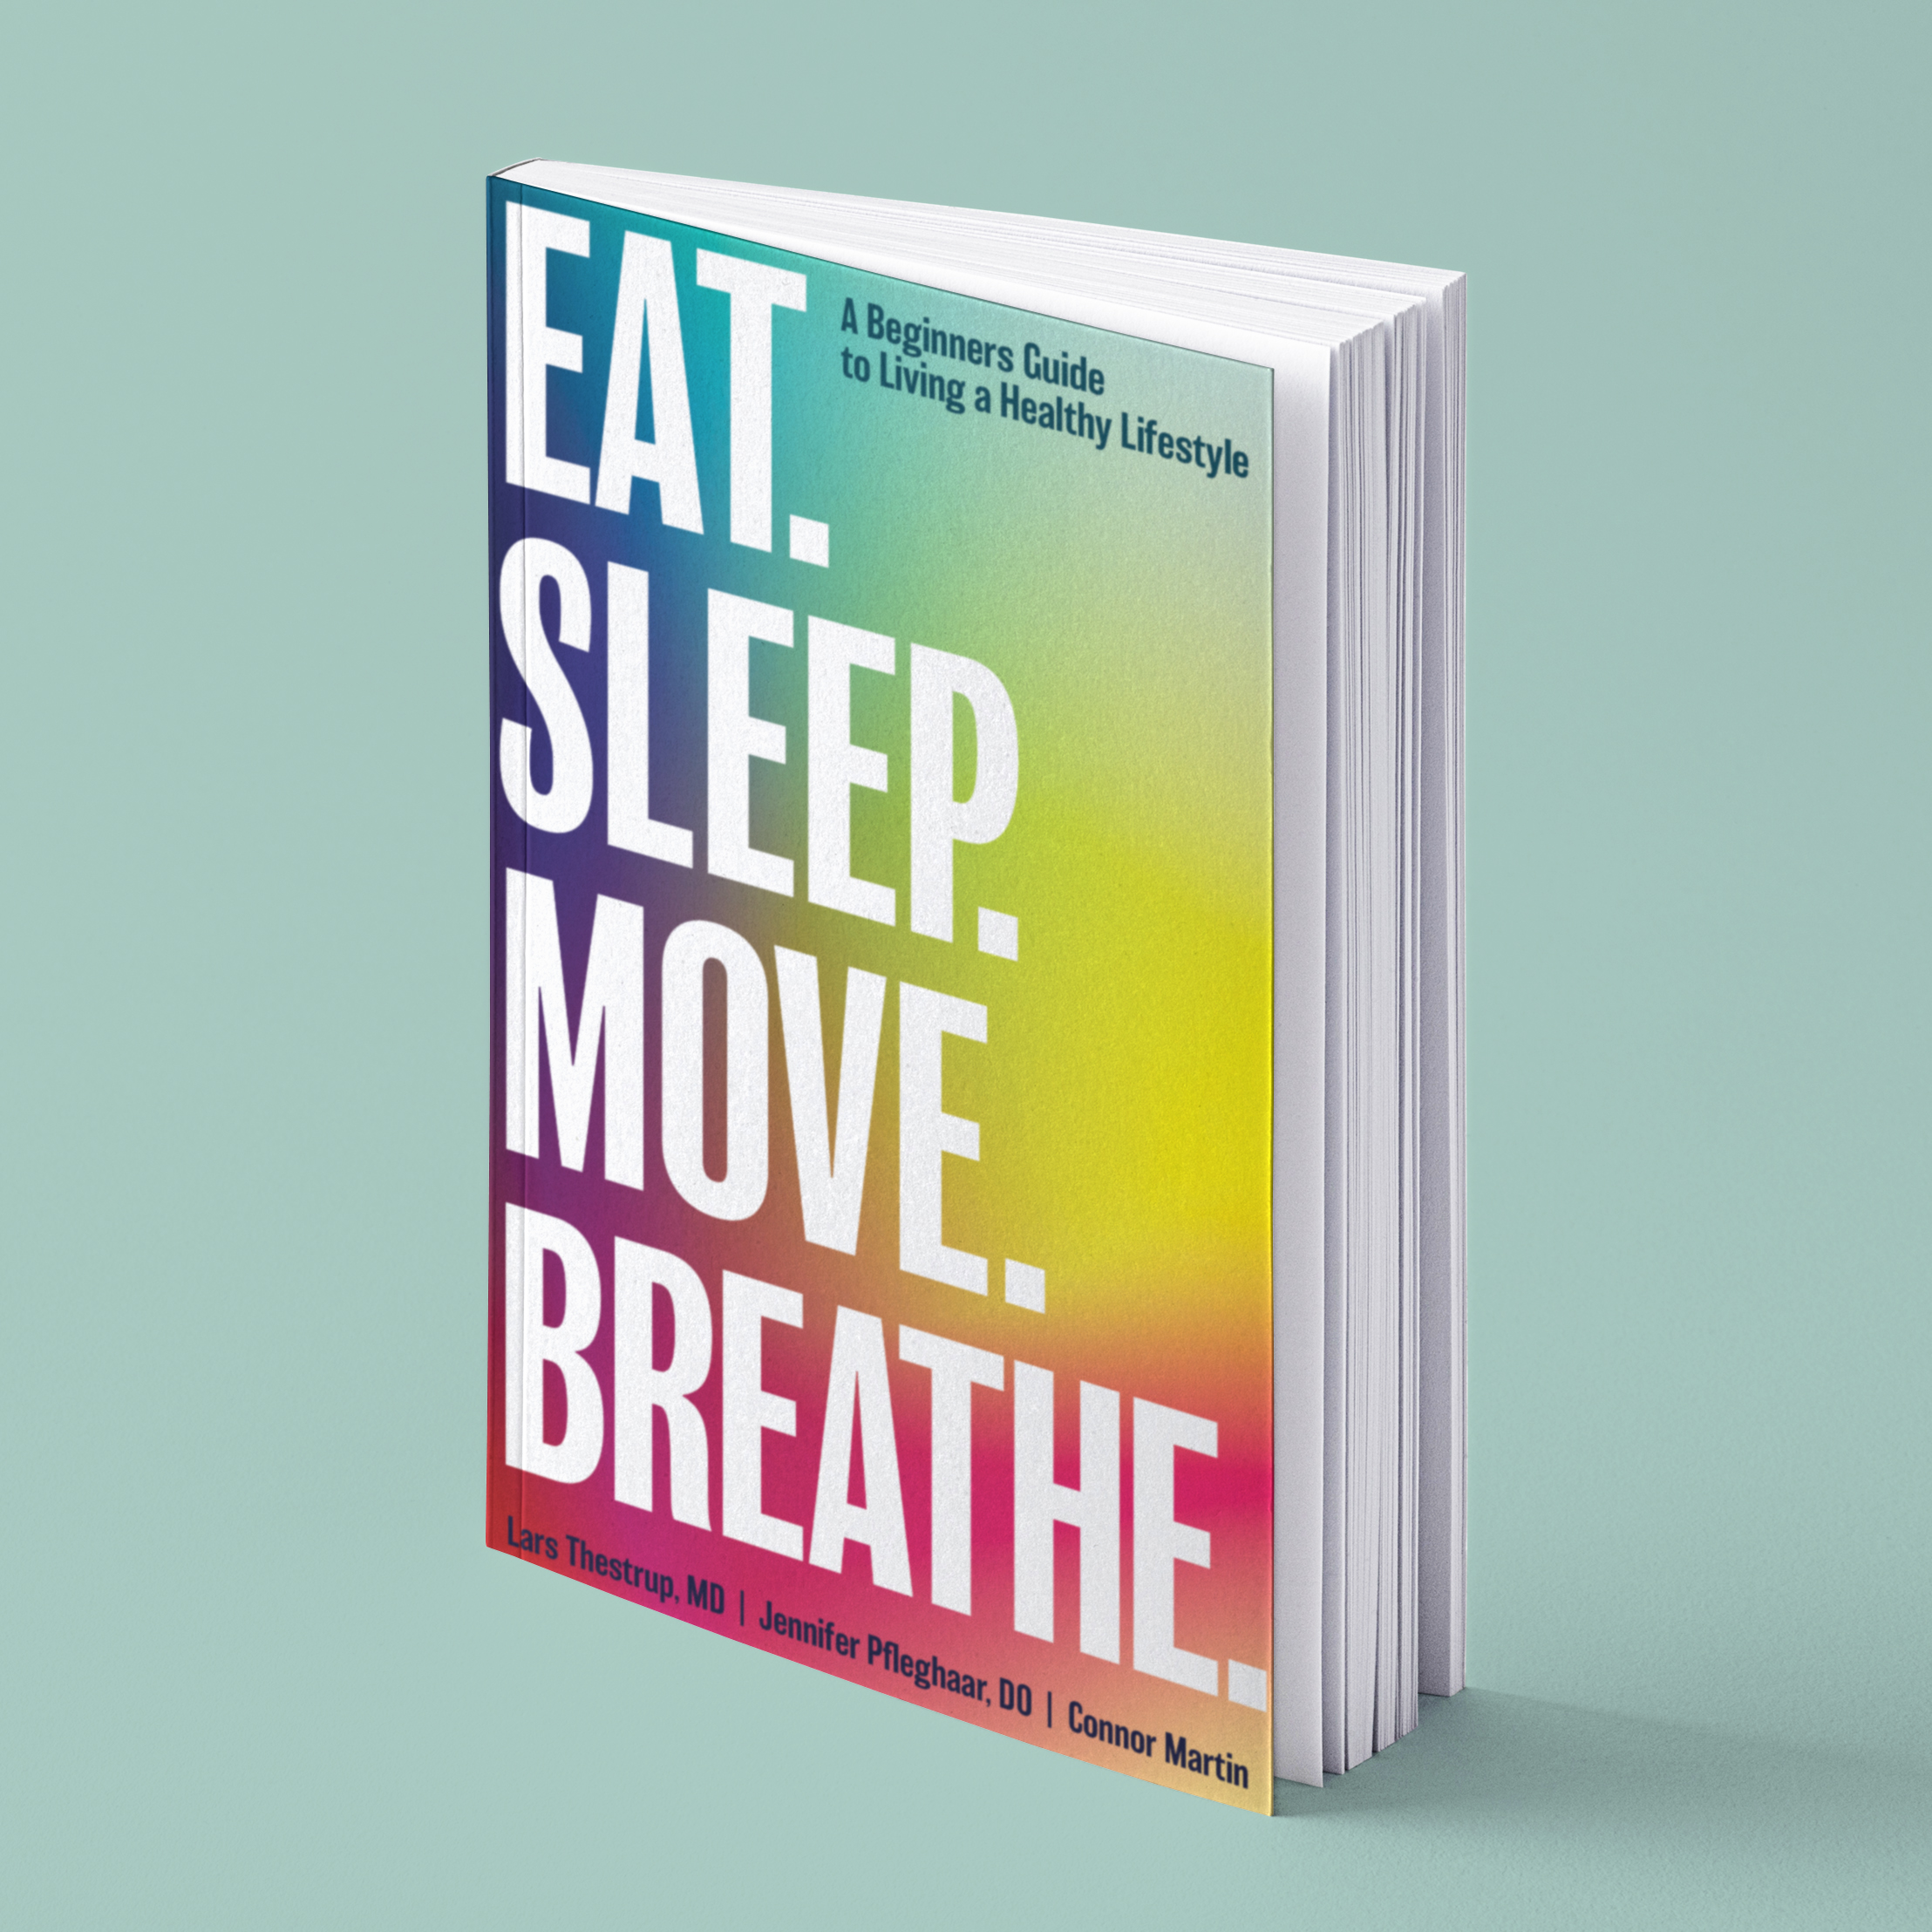 Eat, Sleep, Move, Breathe. By Dr. Jennifer Pfleghaar, Dr. Lars Thestrup, and Connor Martin